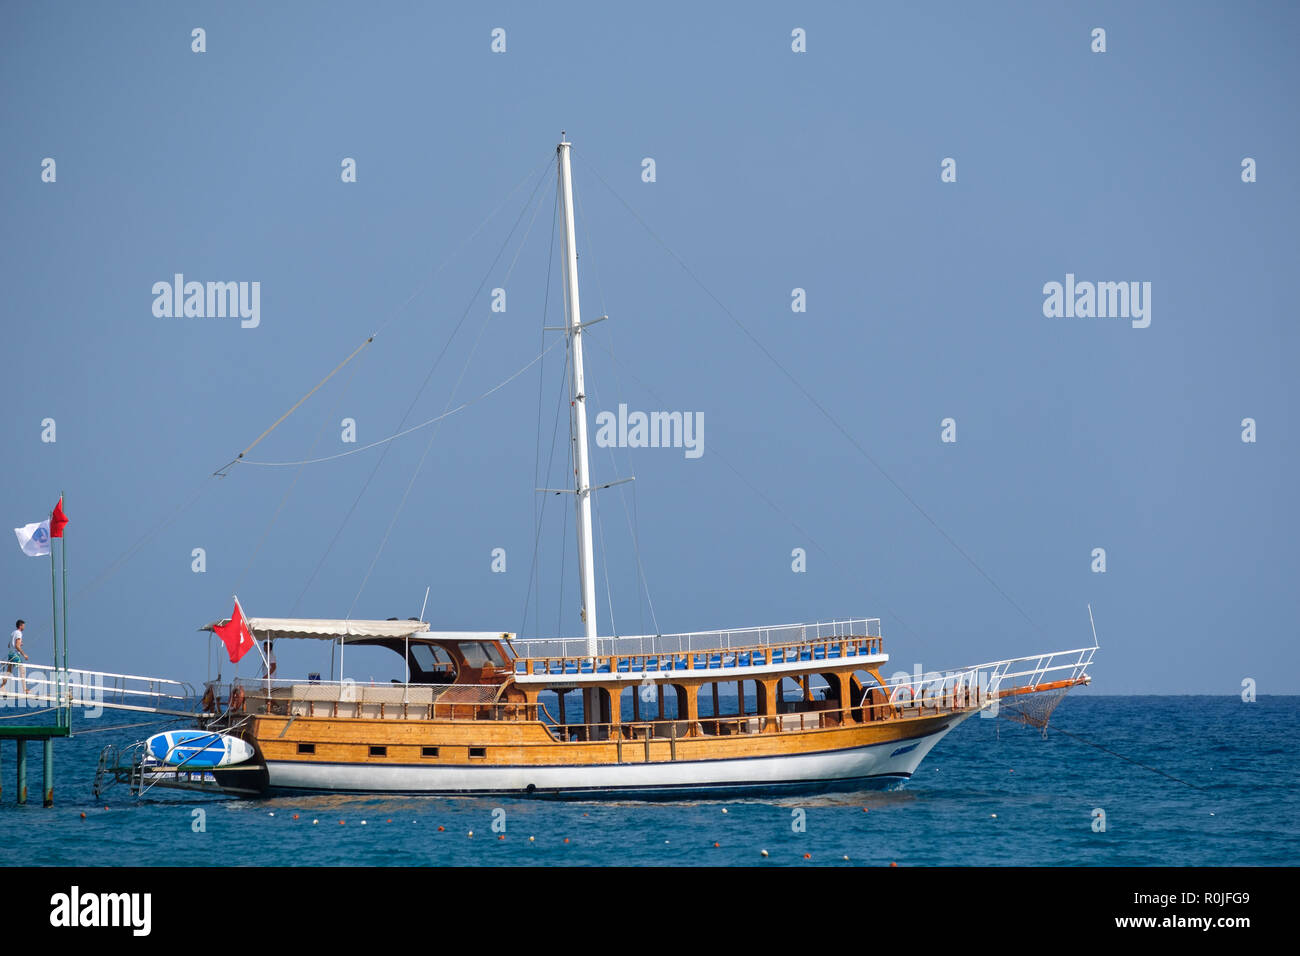 Boat used for snorkelling tours at the Club Med Palmiye luxury all inclusive resort, Kemer, Antalya, Turkey - Stock Image